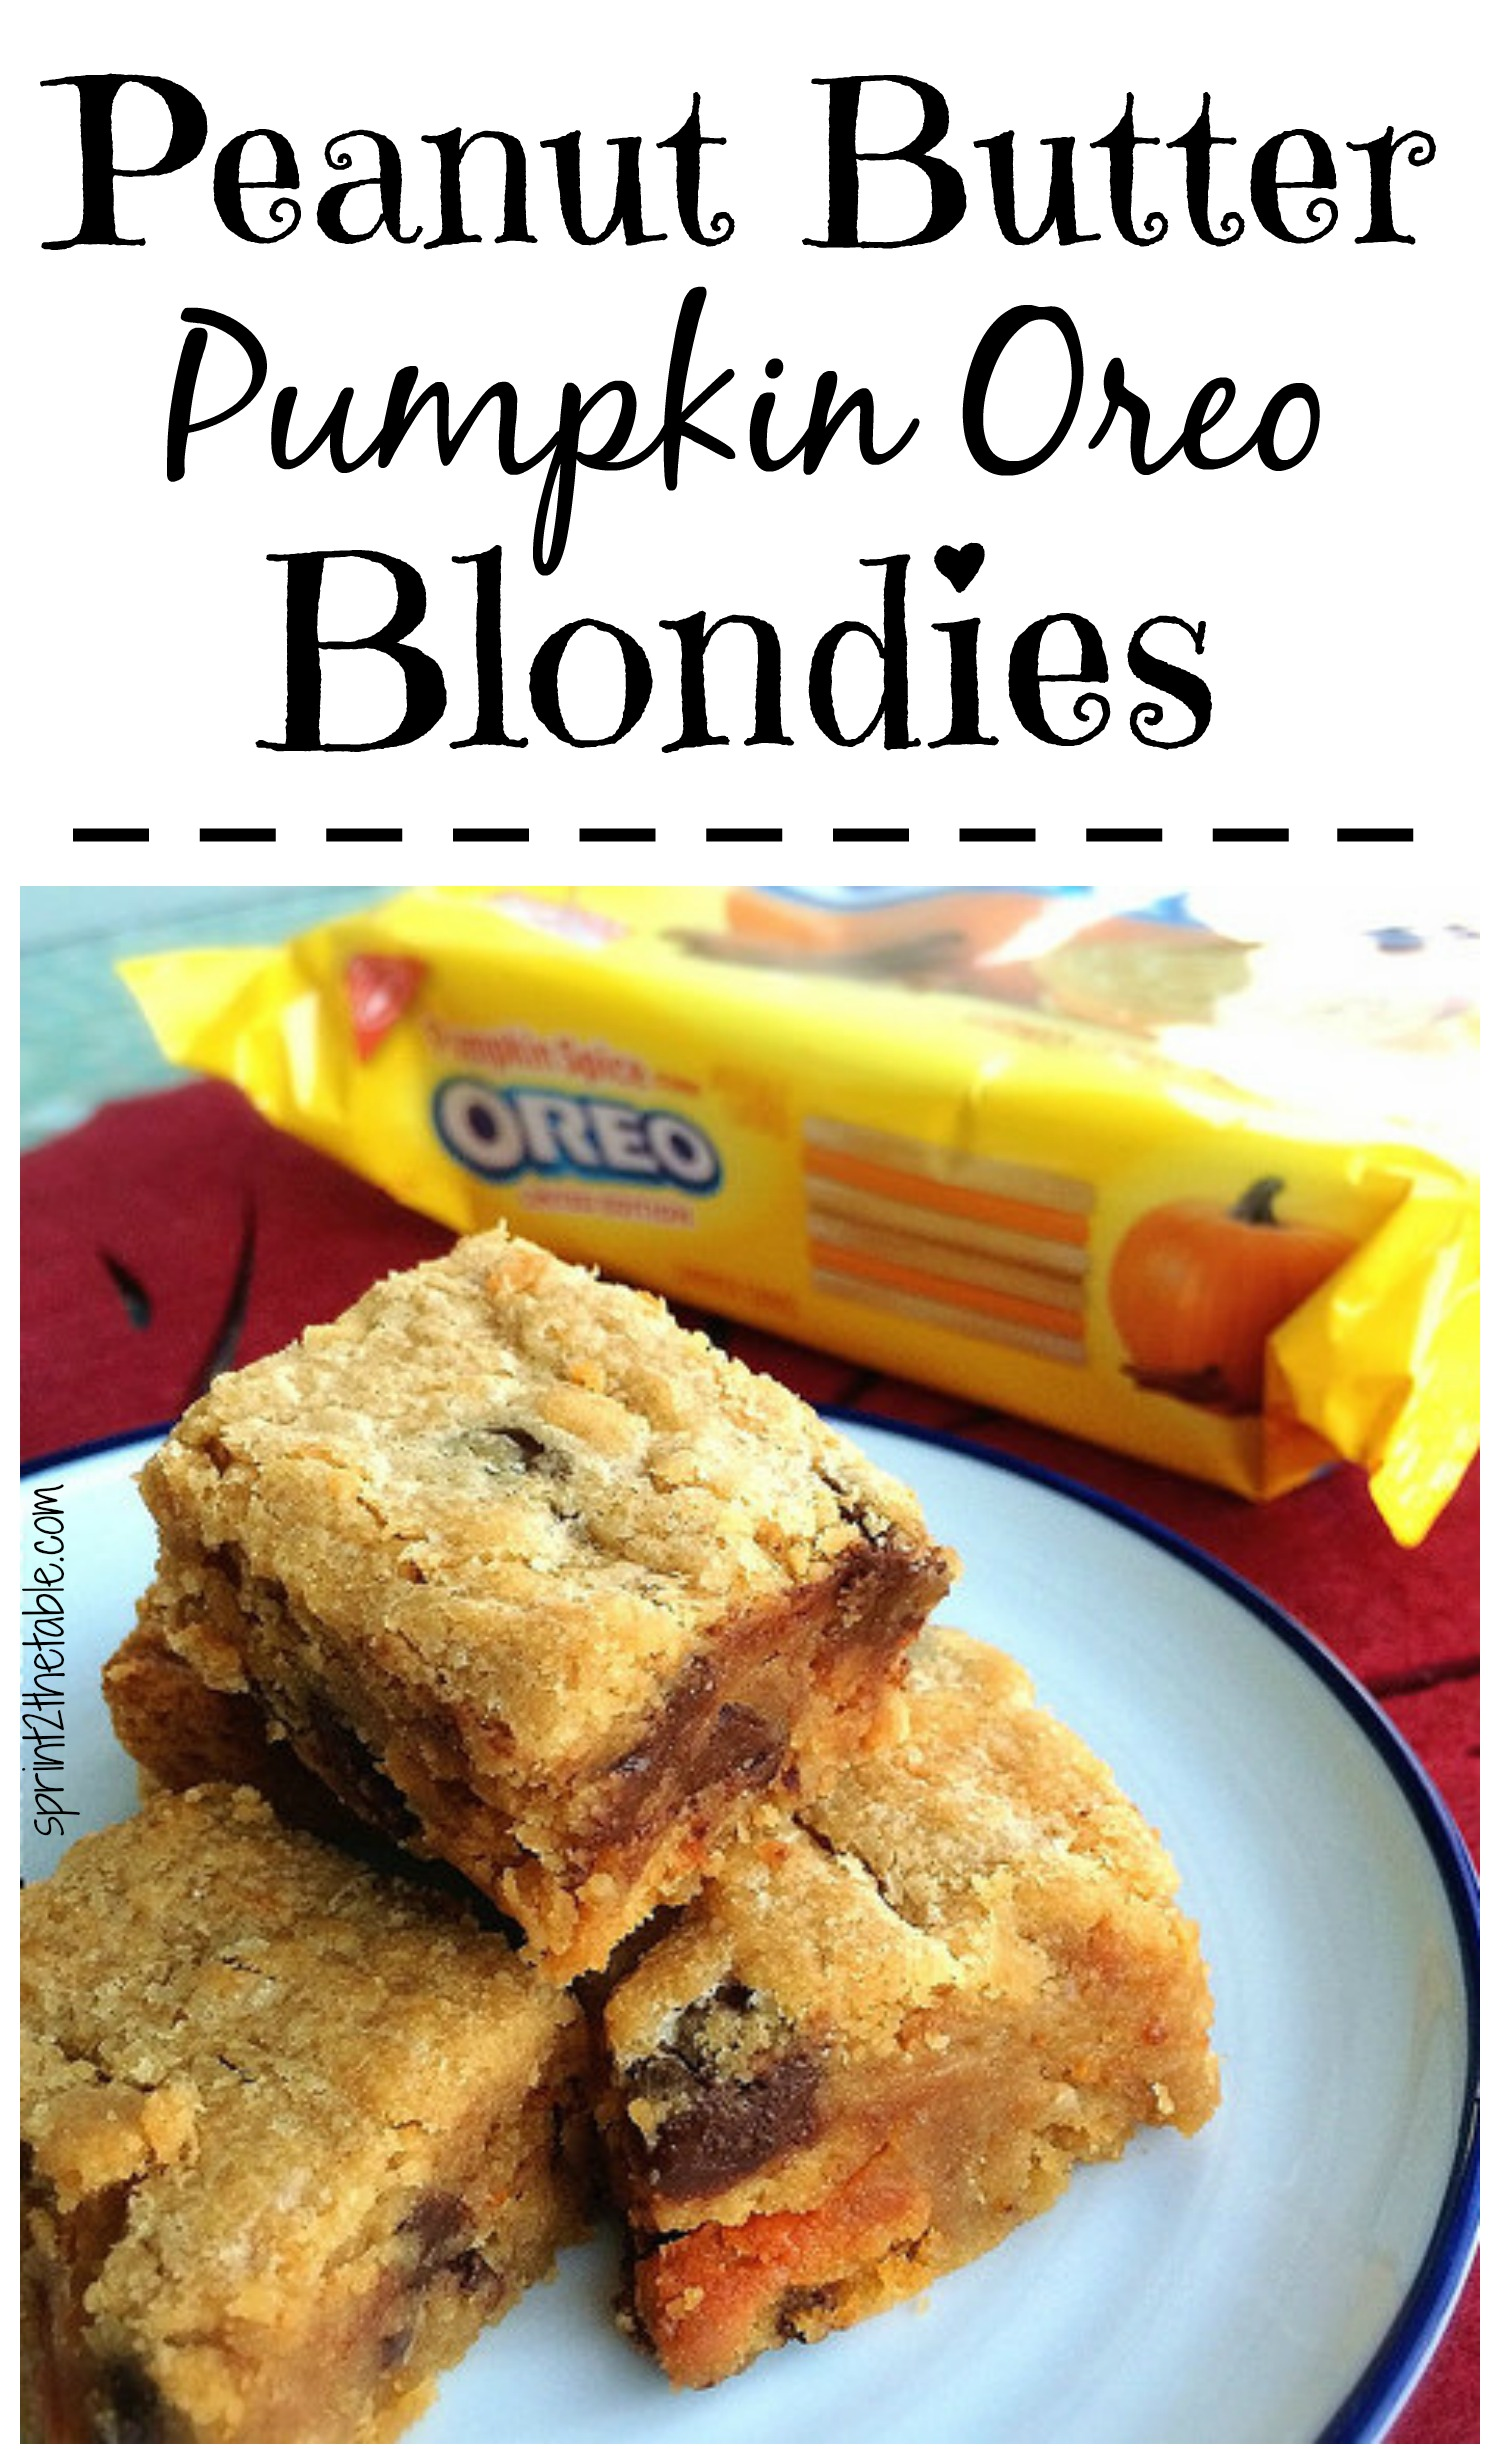 Peanut-Butter-Pumpkin-Oreo-Blondies